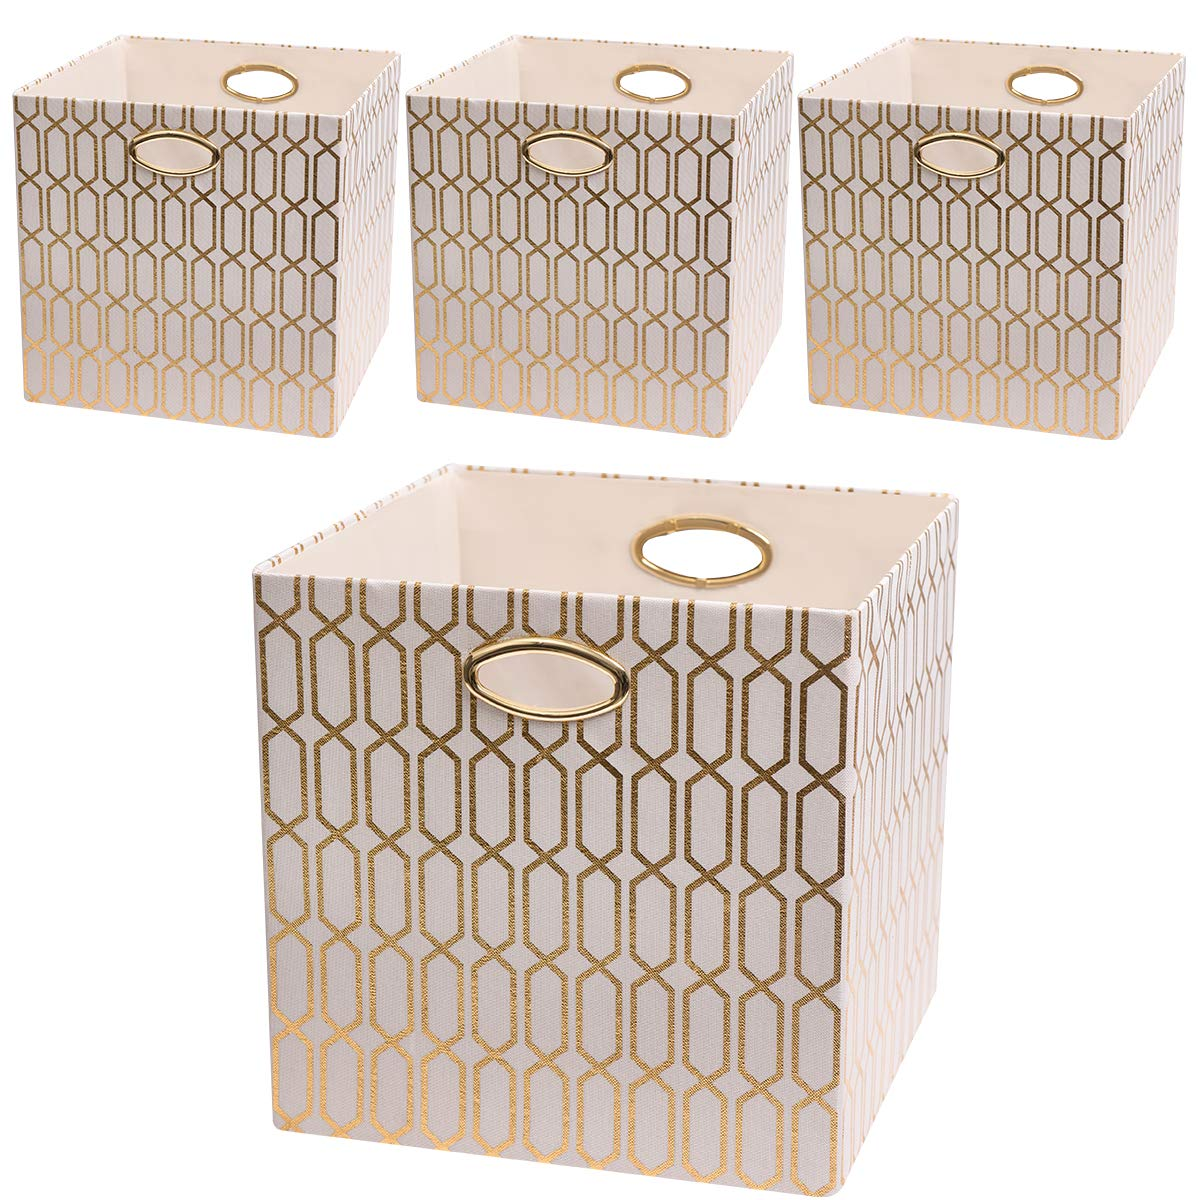 Posprica Foldable Storage Bins - 13x13 Fabric Storage Cubes Basket Boxes Containers Drawers (4pcs, Cream) by Posprica